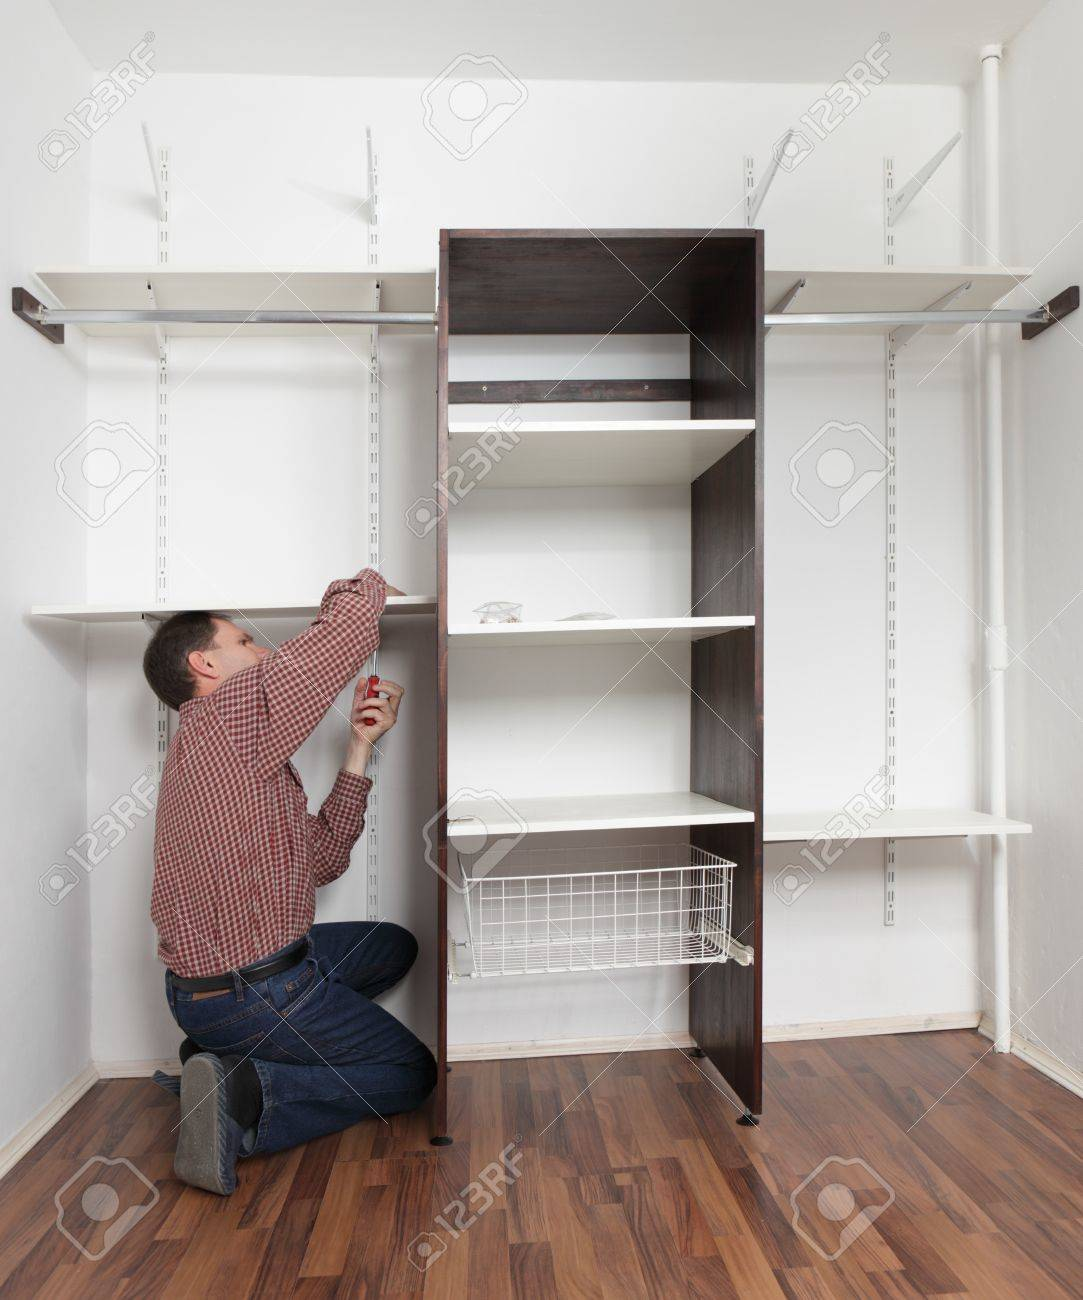 Man assembling the closet with wooden shelves Stock Photo - 9948804